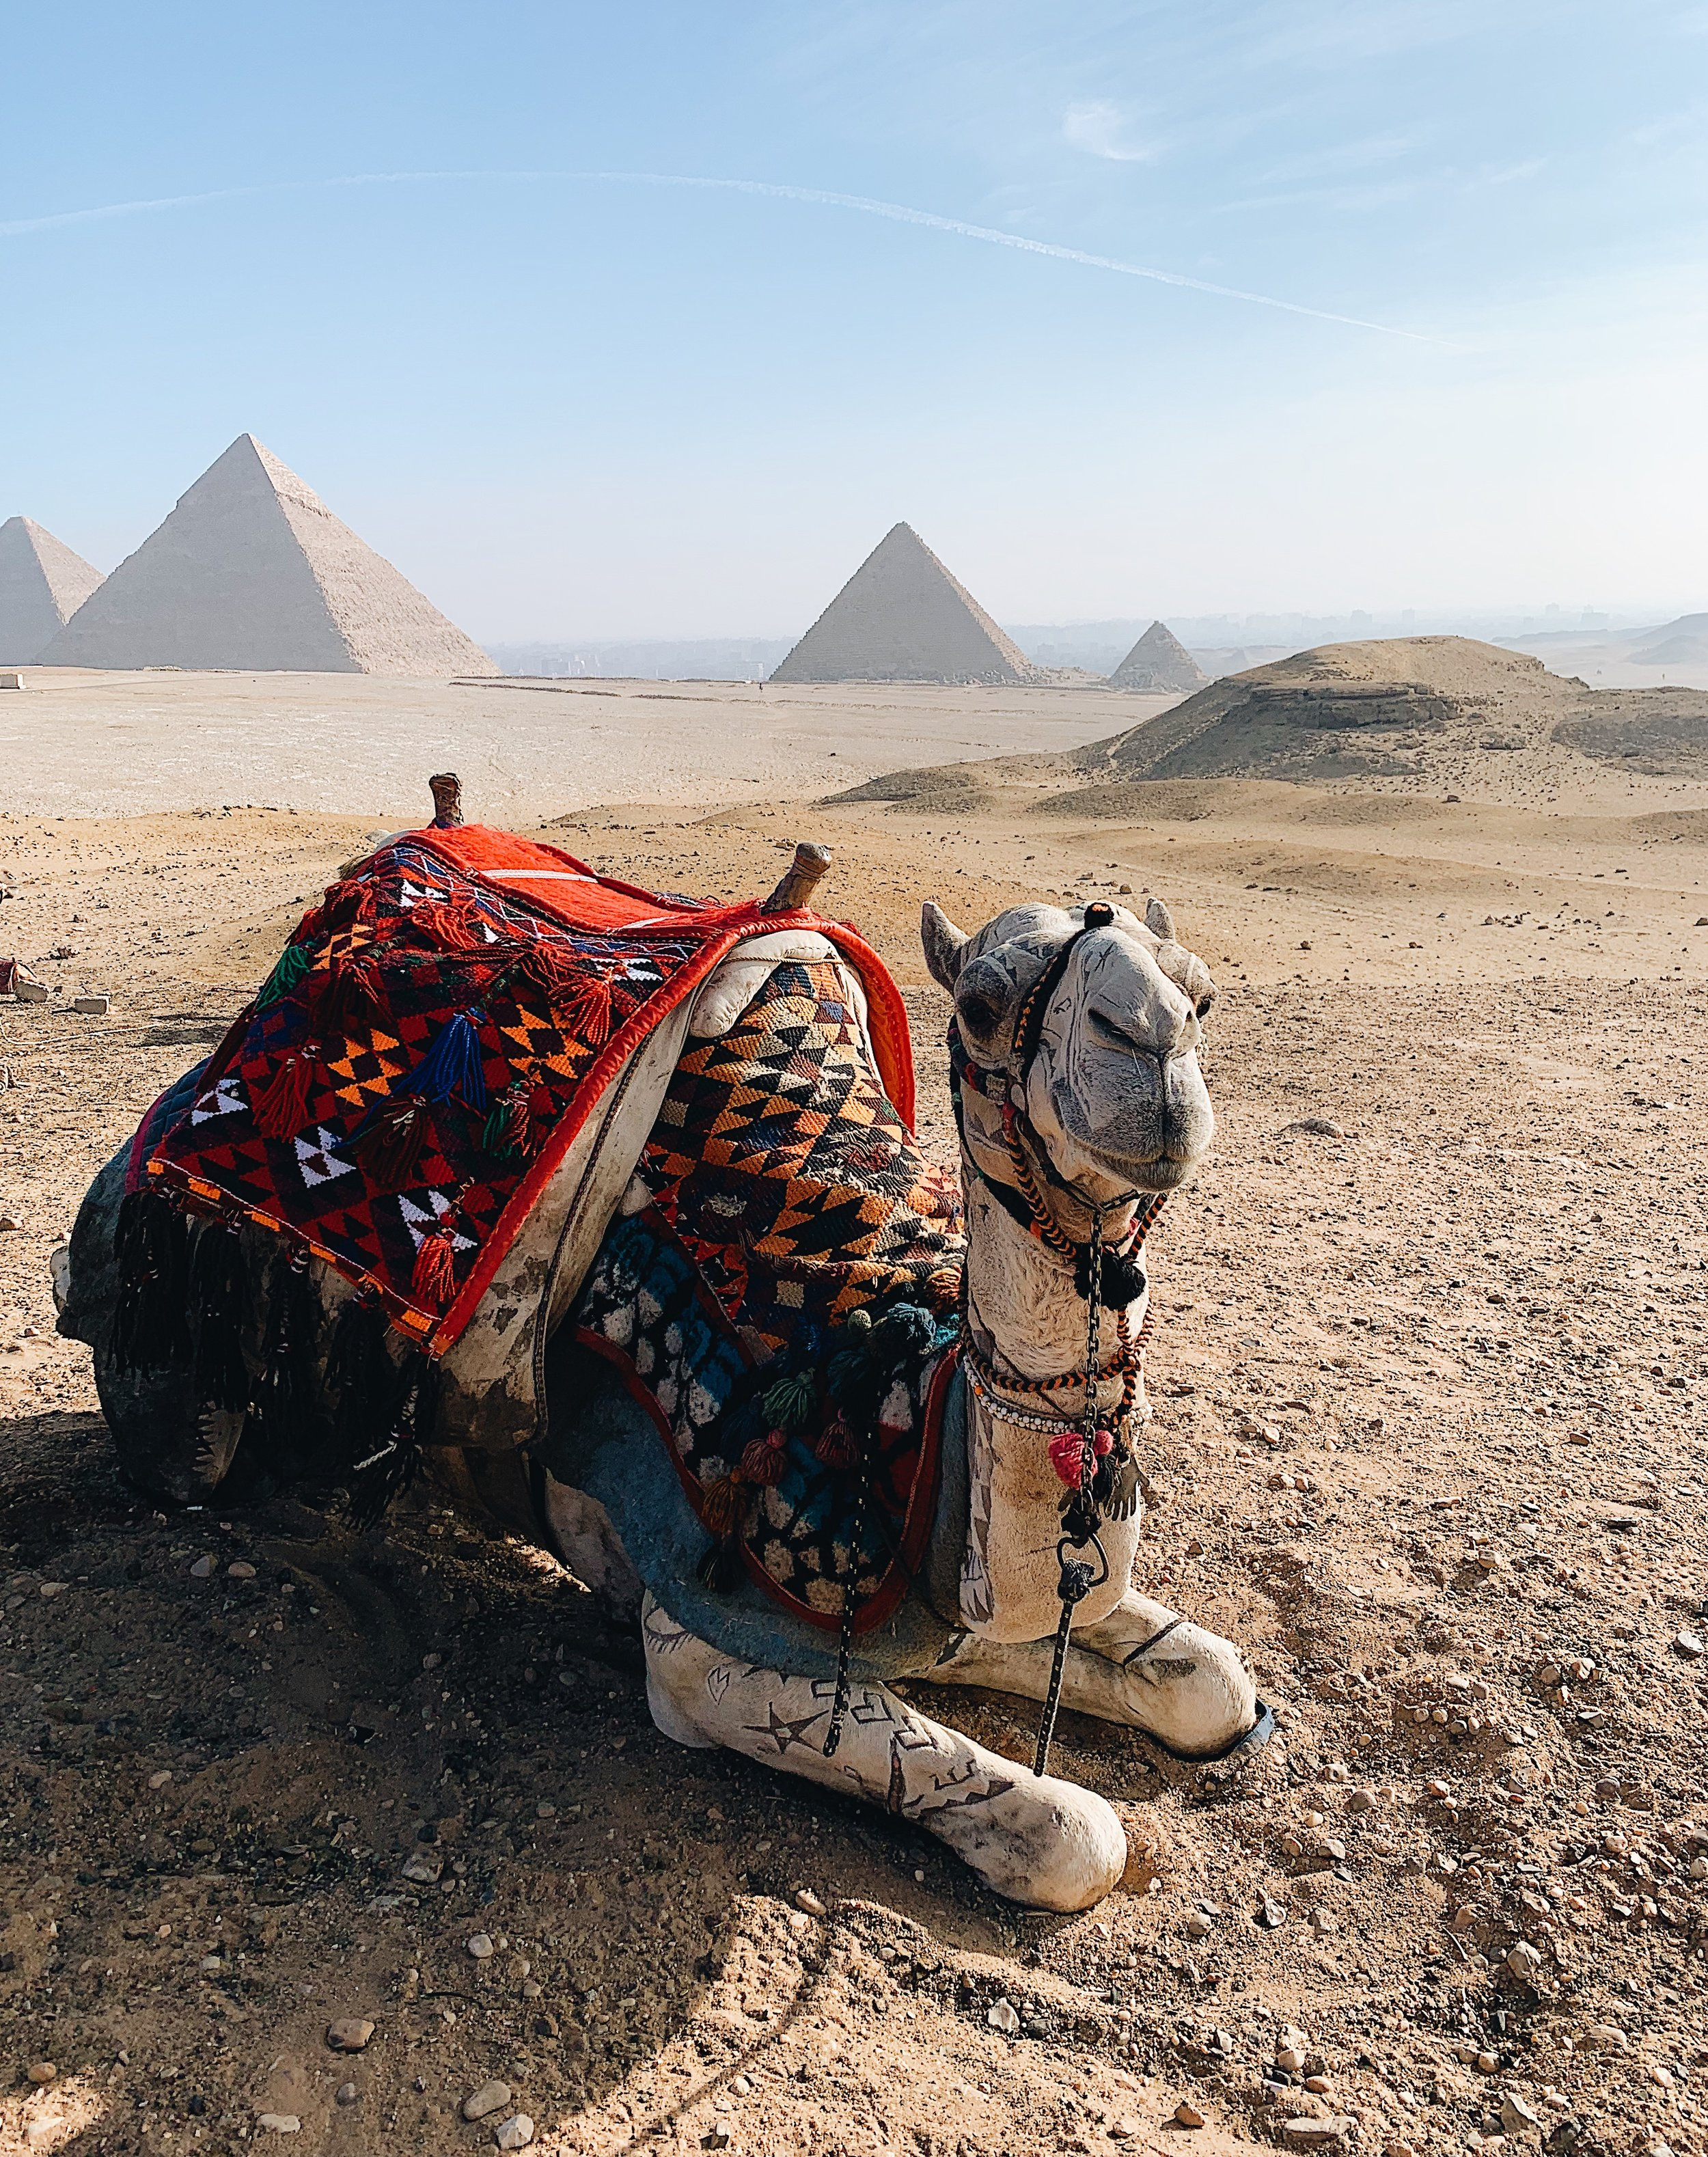 travel to egypt cairo pyramids from nyc.JPG